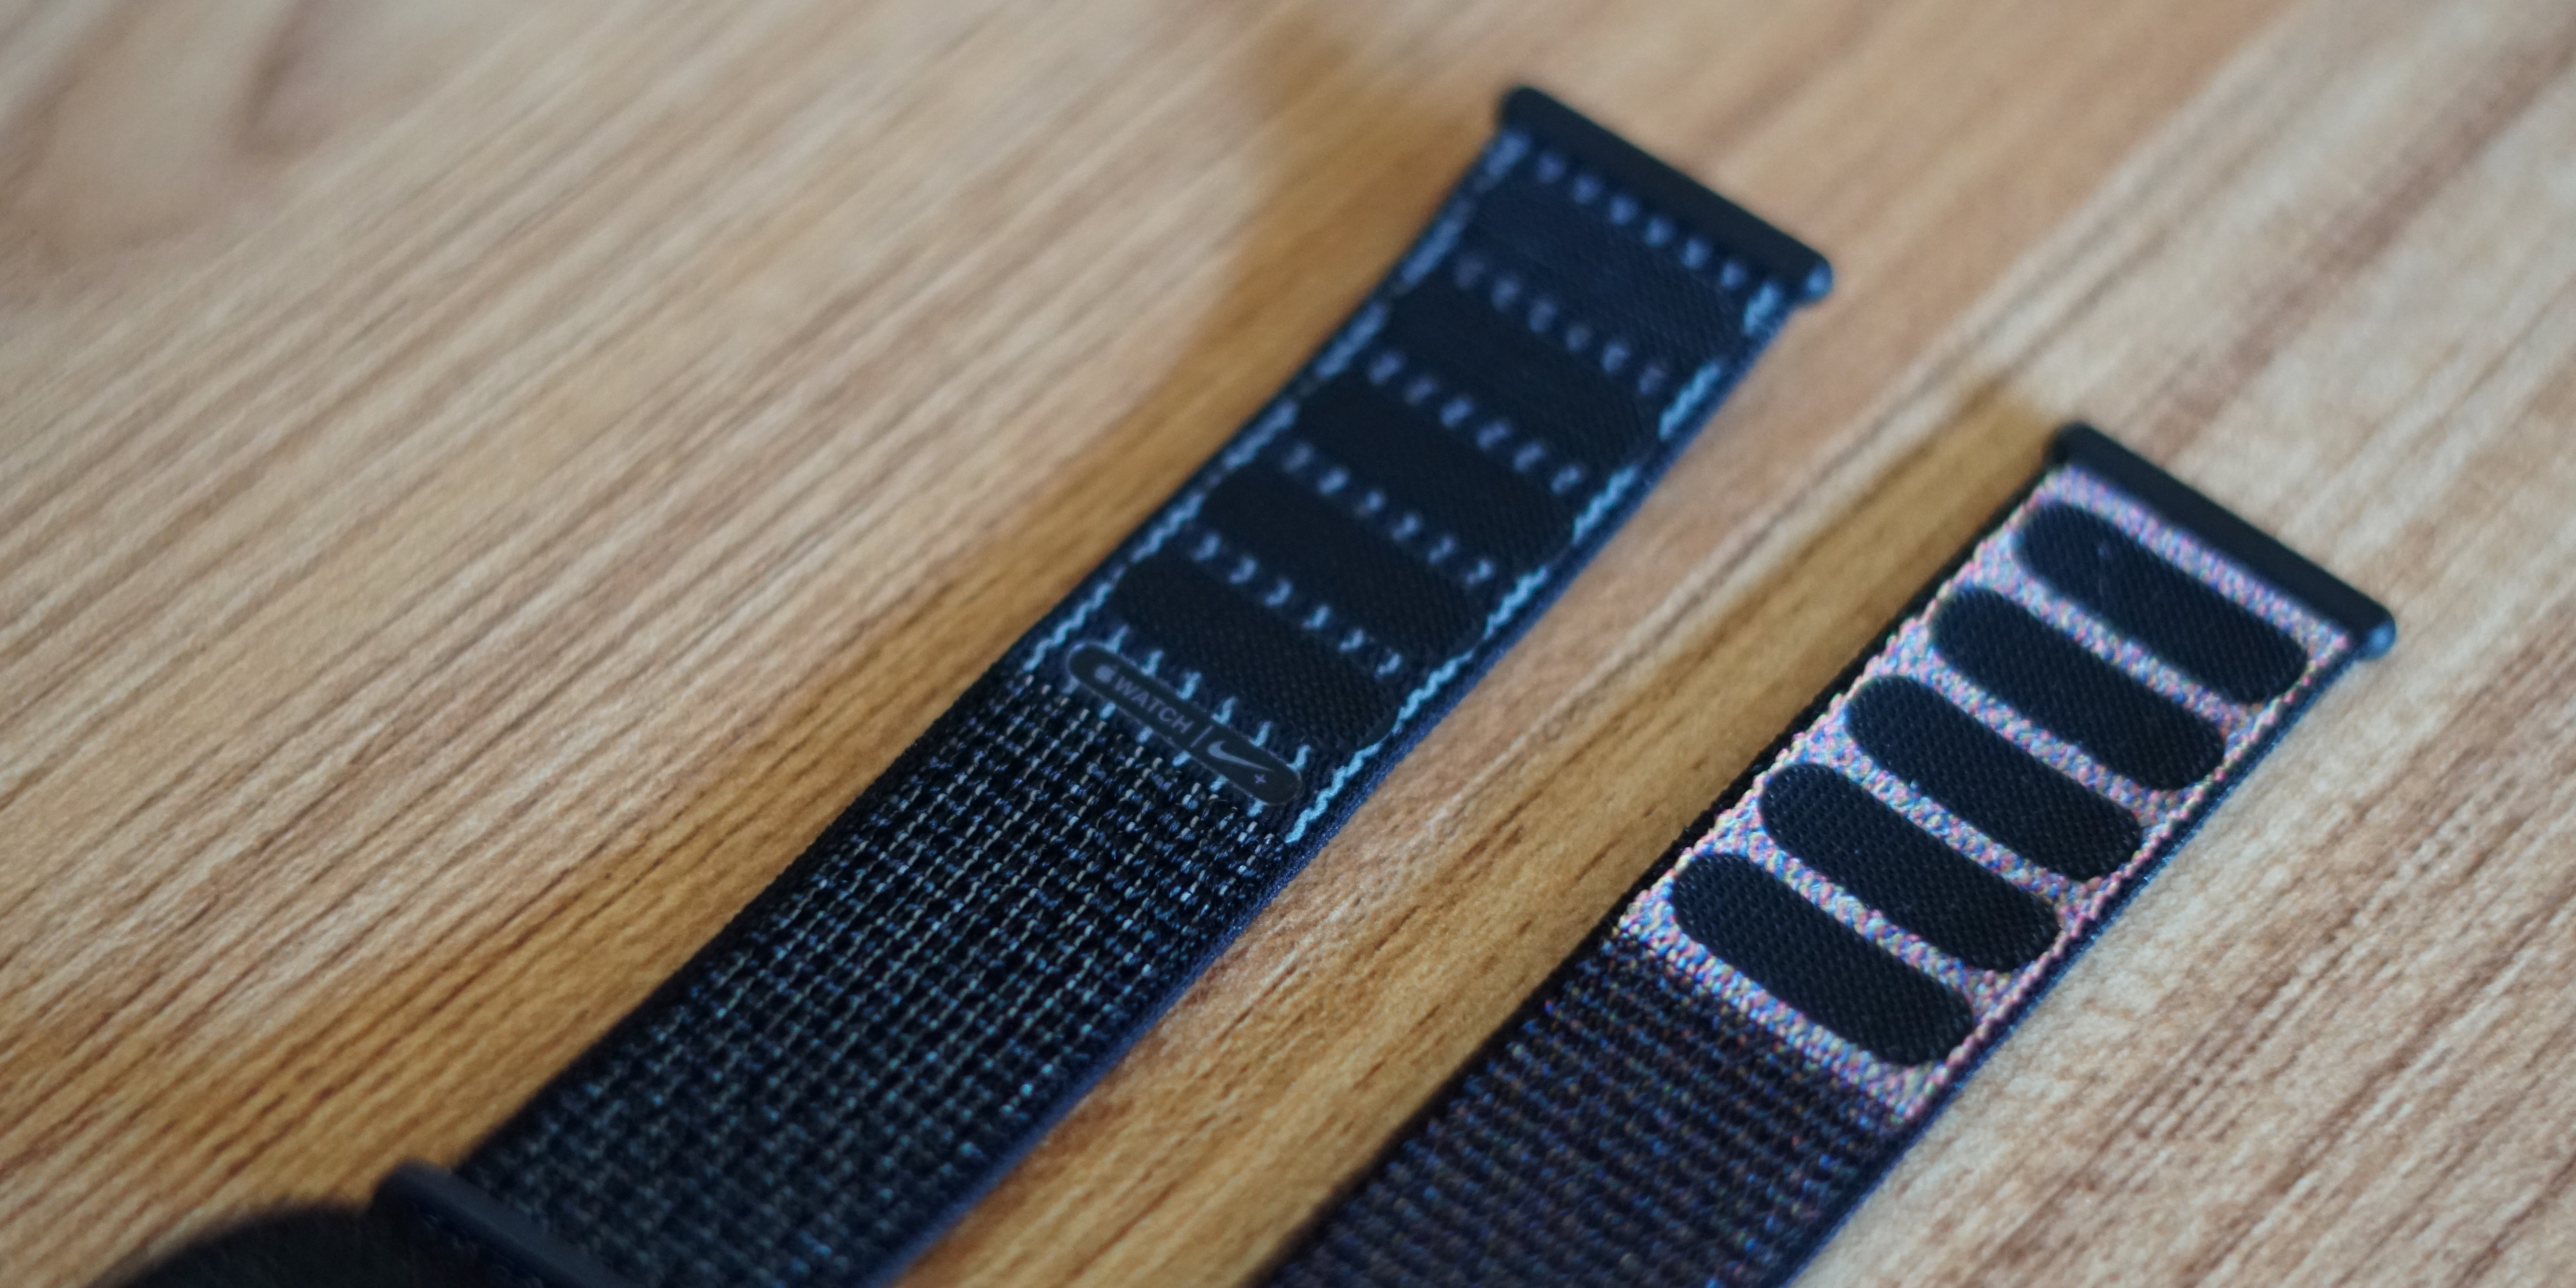 Microprocesador idioma triángulo  Hands-on with the new reflective Sport Loop band for Apple Watch Nike+ -  9to5Mac